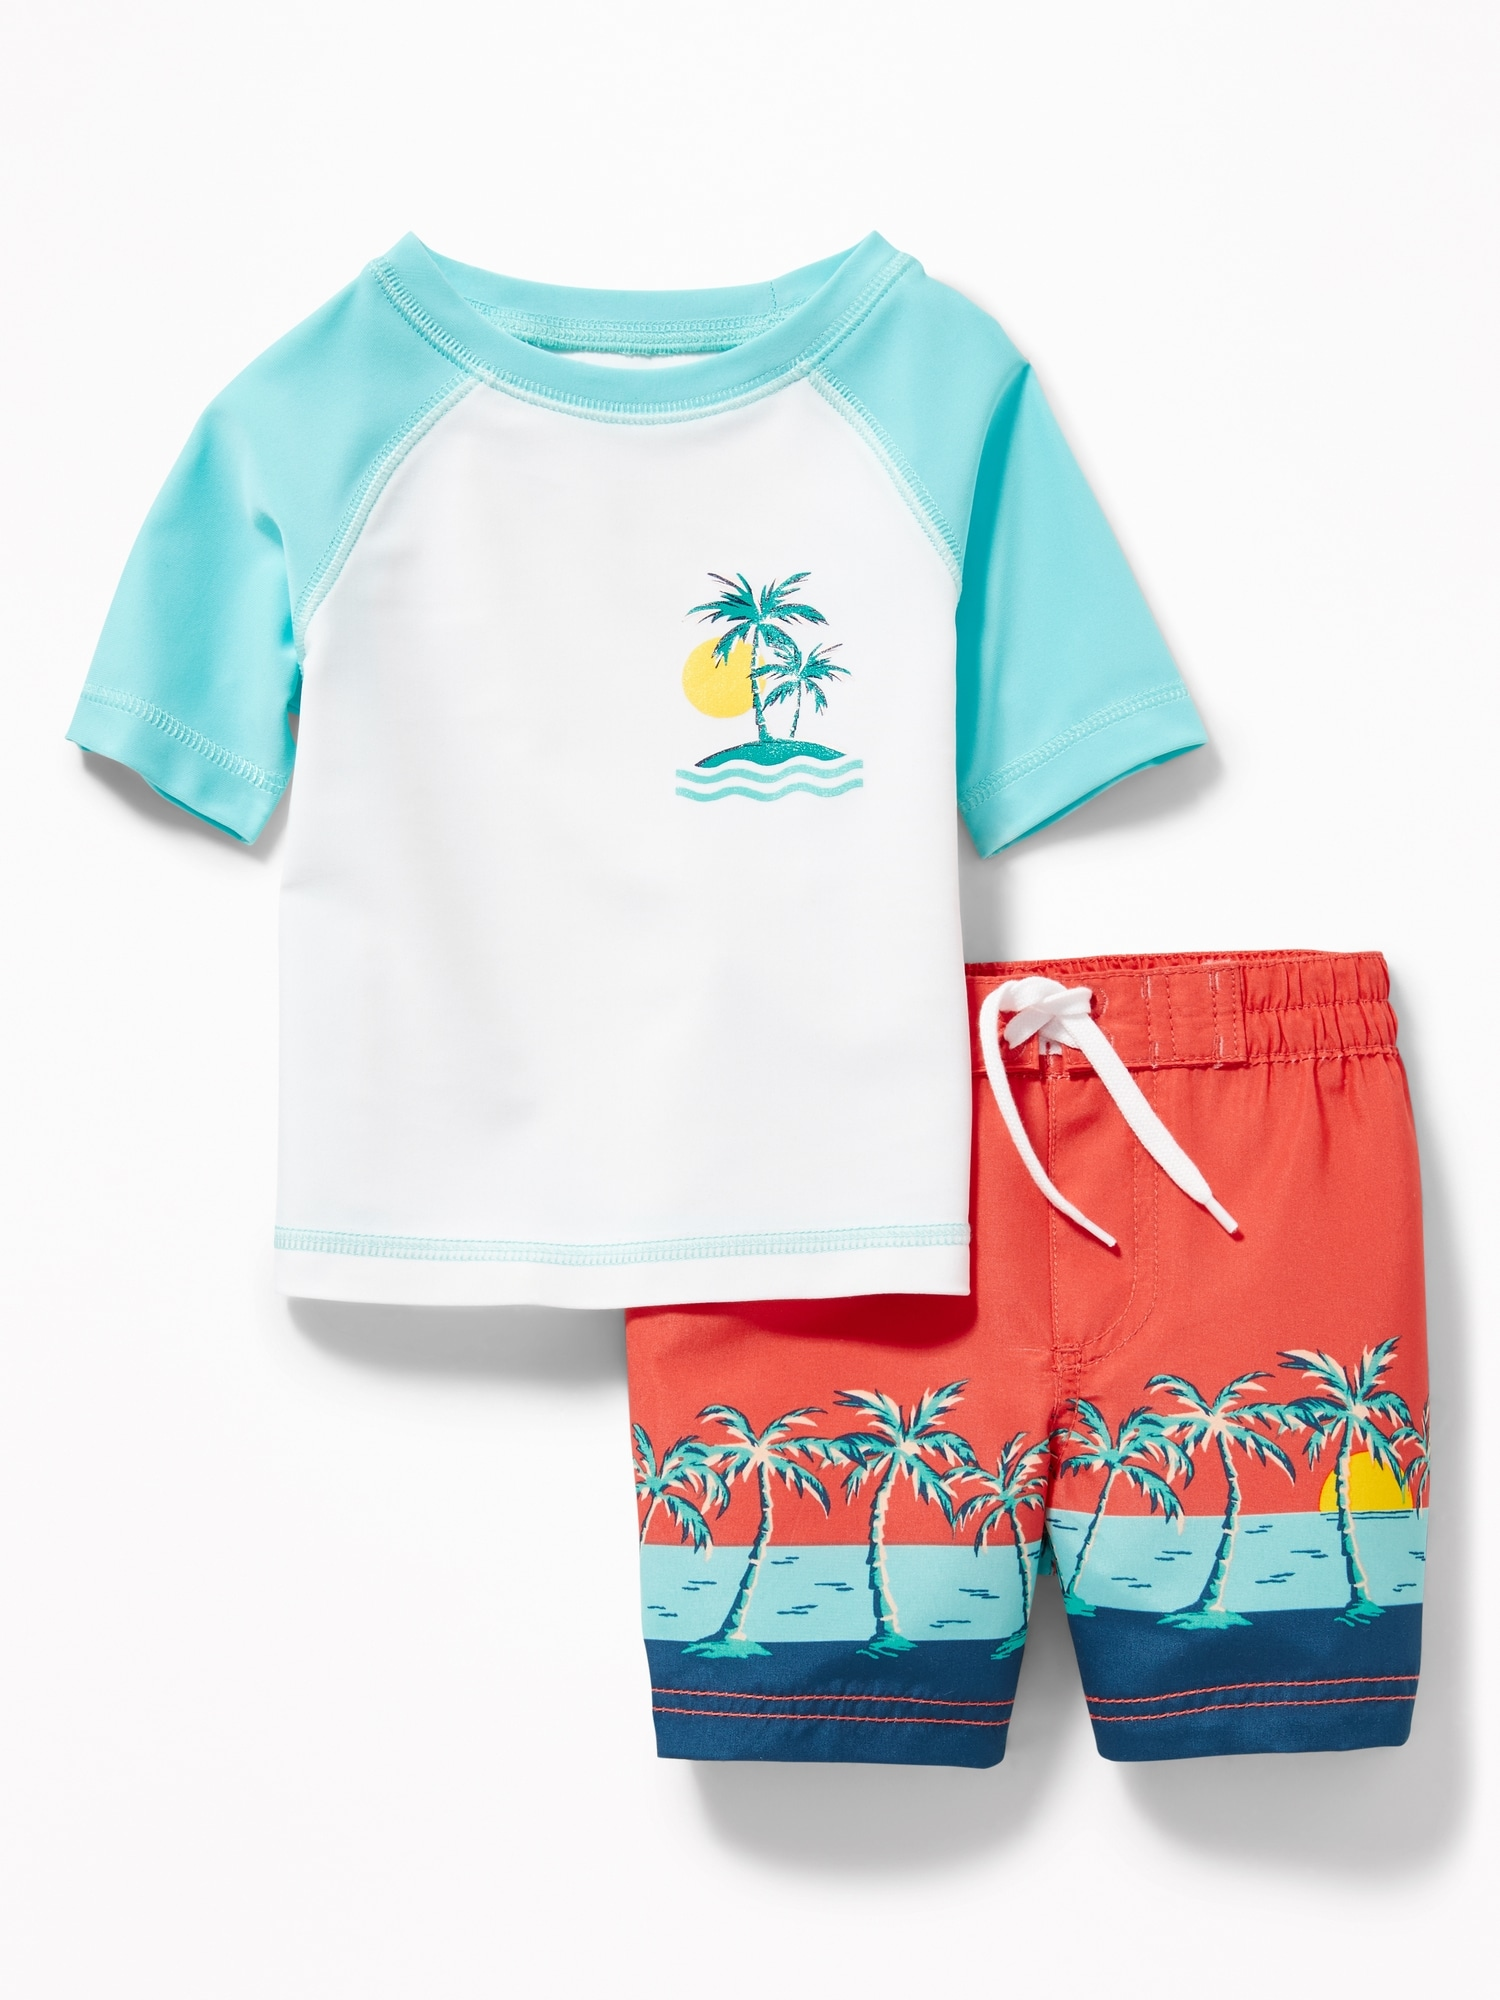 c18a09d5a Graphic Rashguard & Printed Swim Trunks Set for Baby   Old Navy